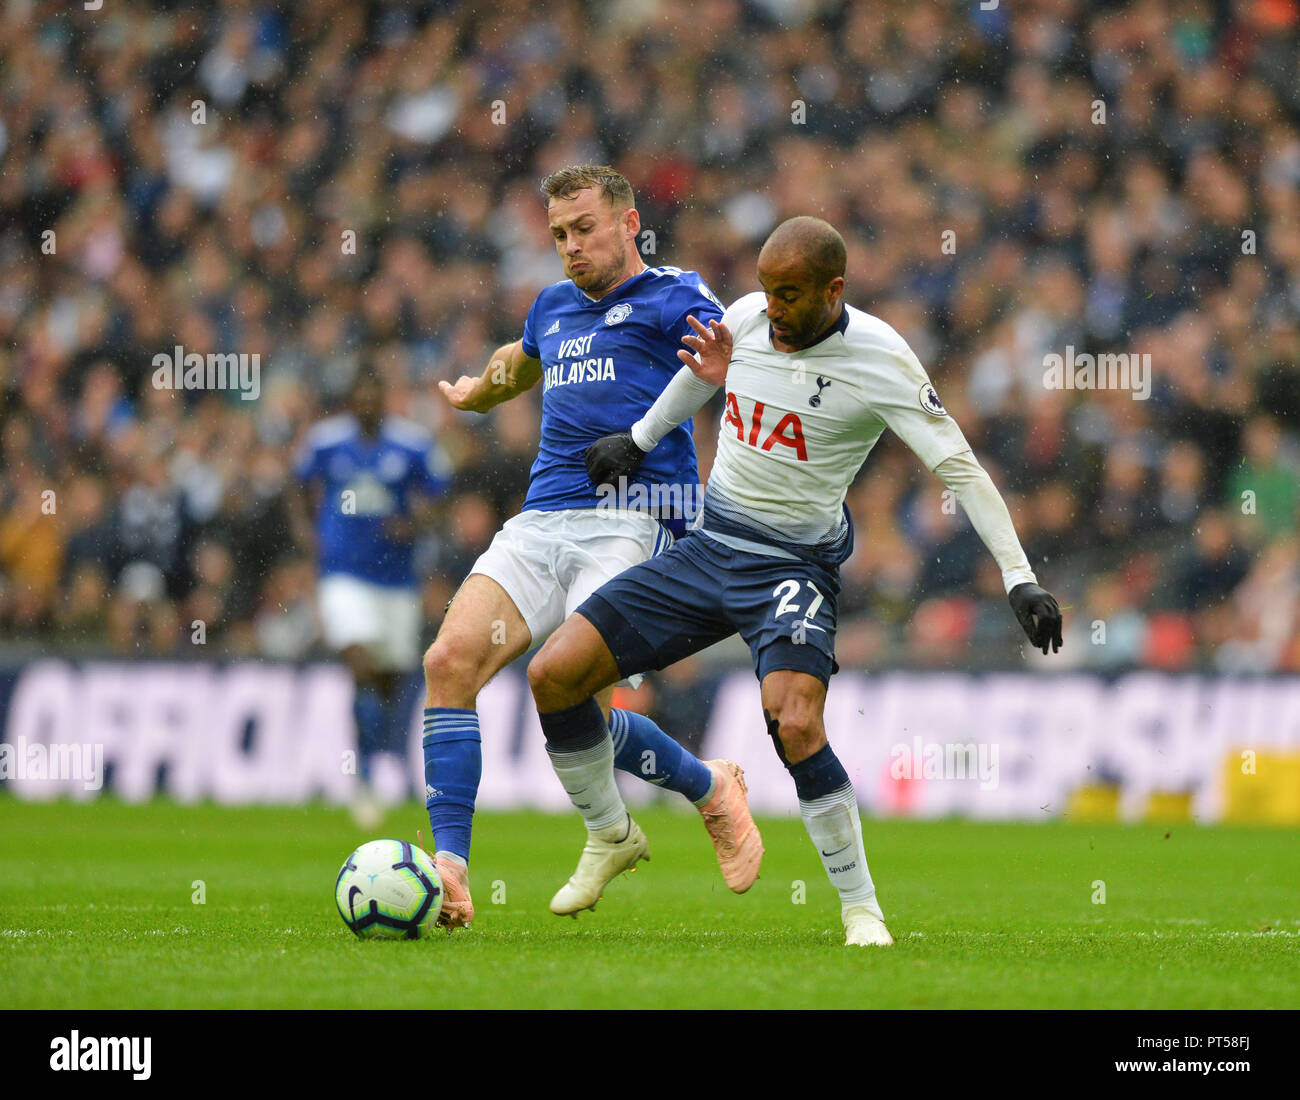 Paris Saint Germain S Lucas Moura Arrives For Tottenham: Lucas Moura Stock Photos & Lucas Moura Stock Images